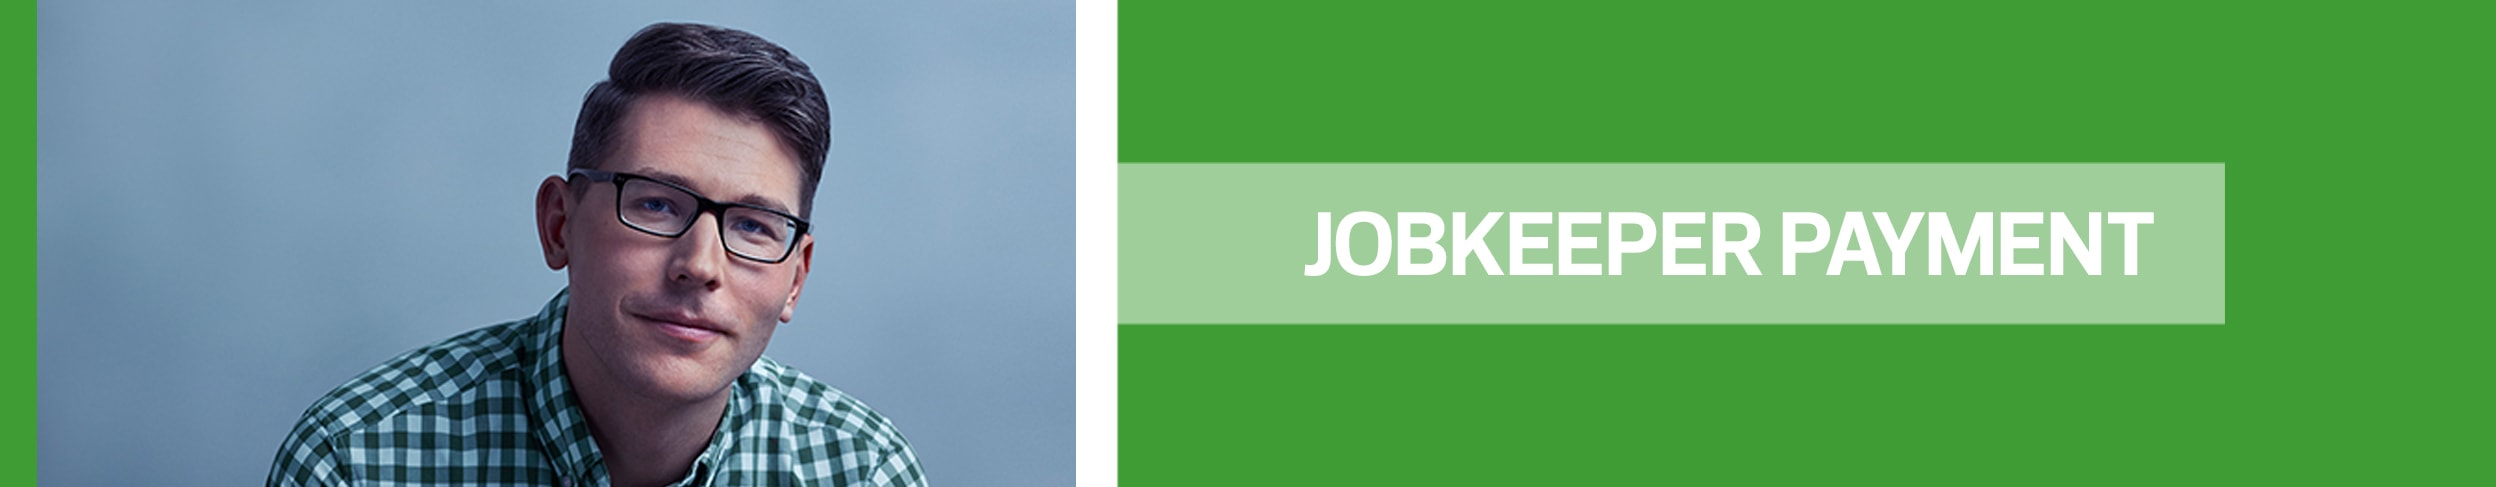 JobKeeper Payments - is your business eligable?